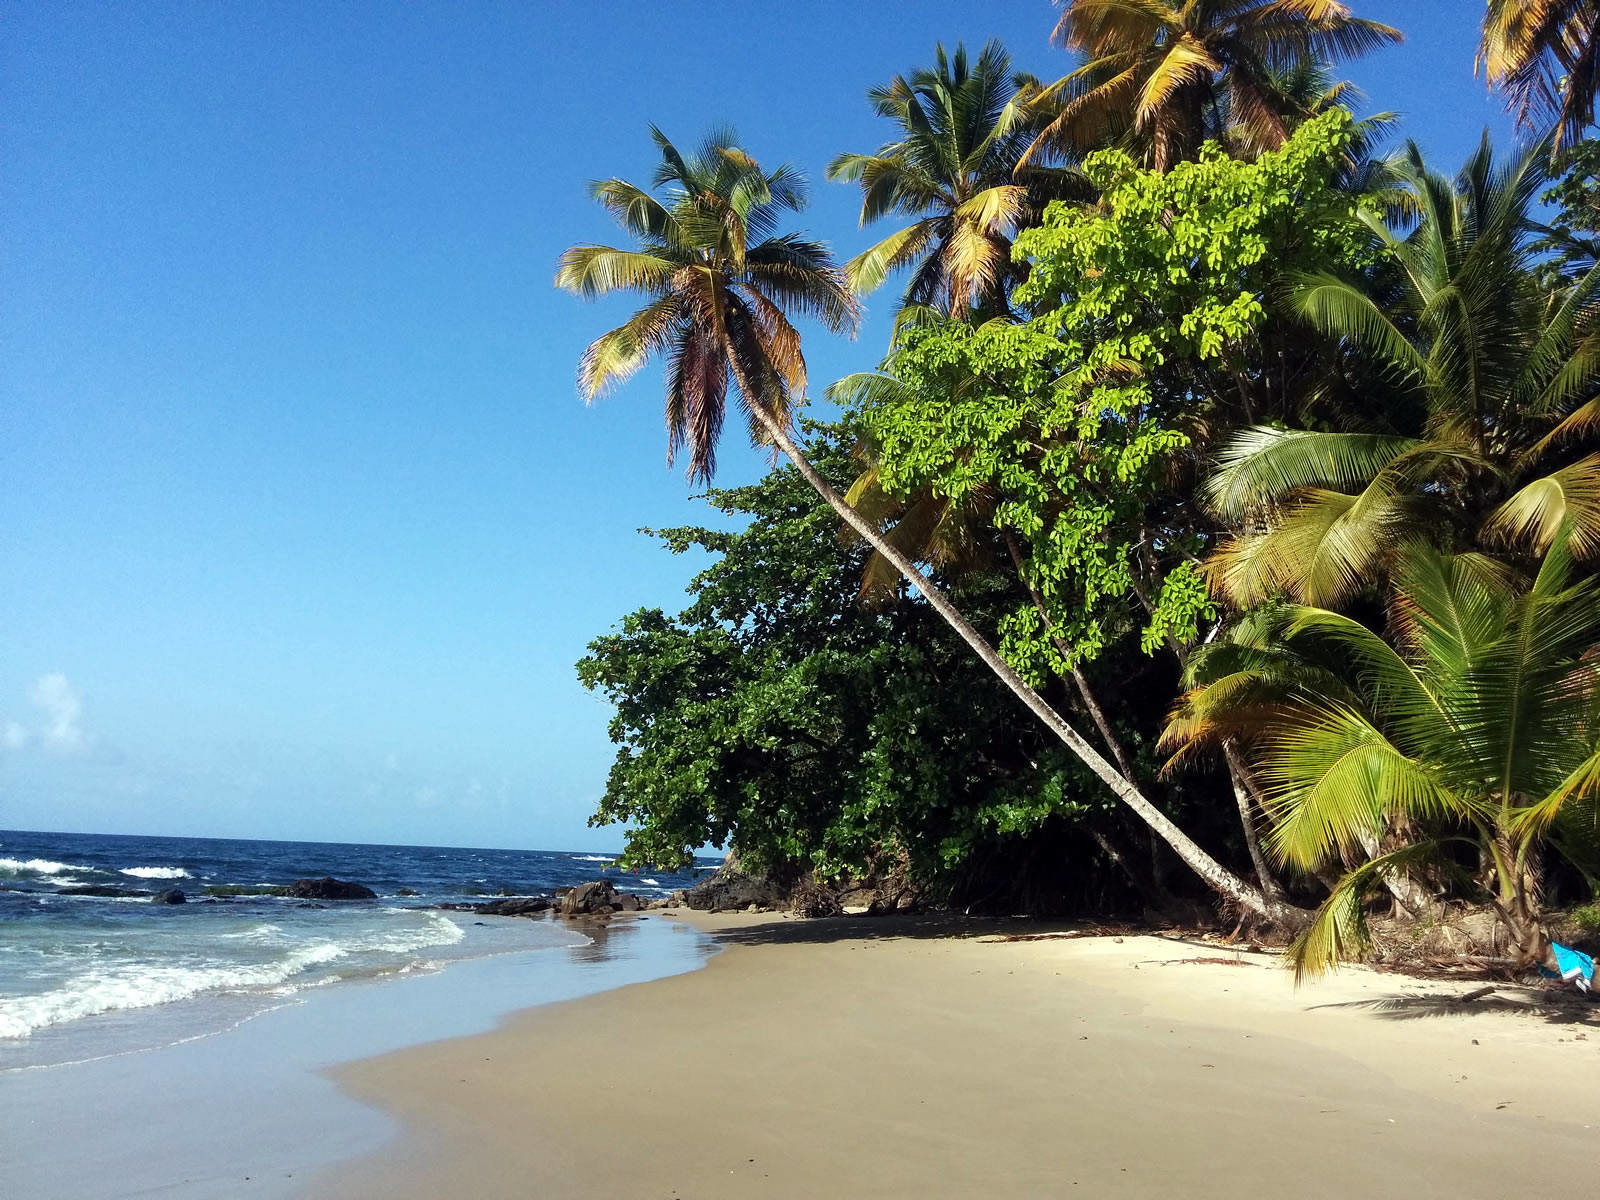 L Anse Martin Beach Destination Trinidad And Tobago Tours Holidays Vacations Travel Guide